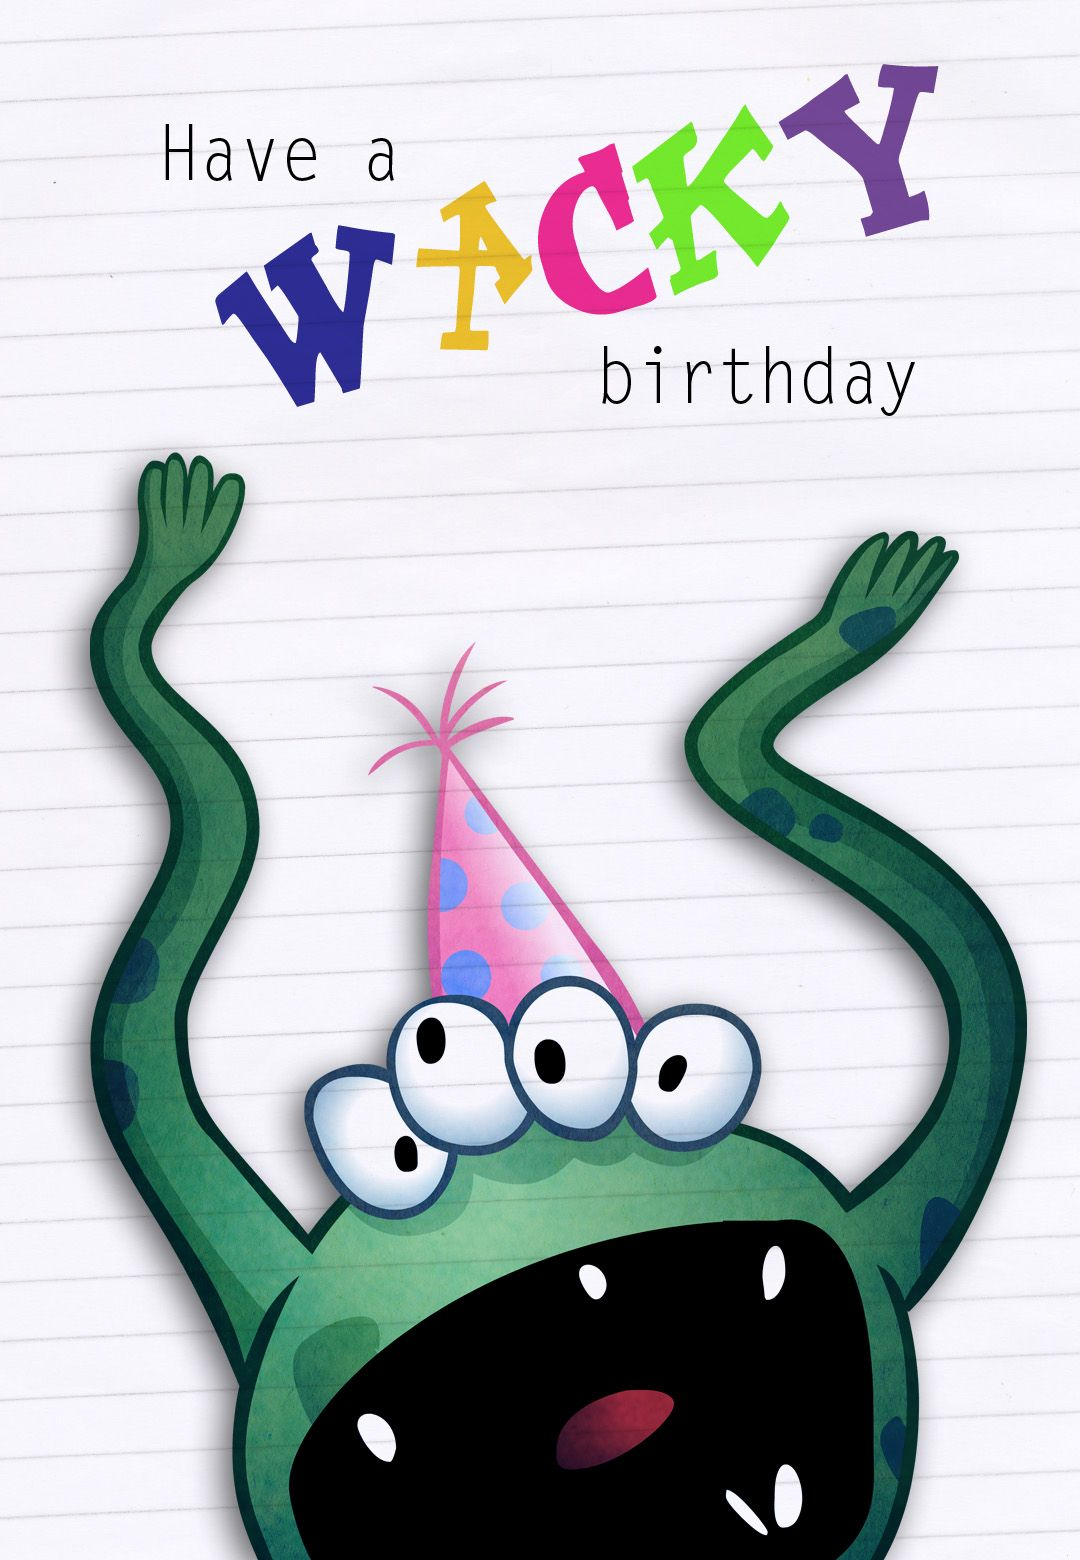 Free Printable Greeting Cards - The Kids Love To Make Cards With - Free Printable Birthday Cards For Kids